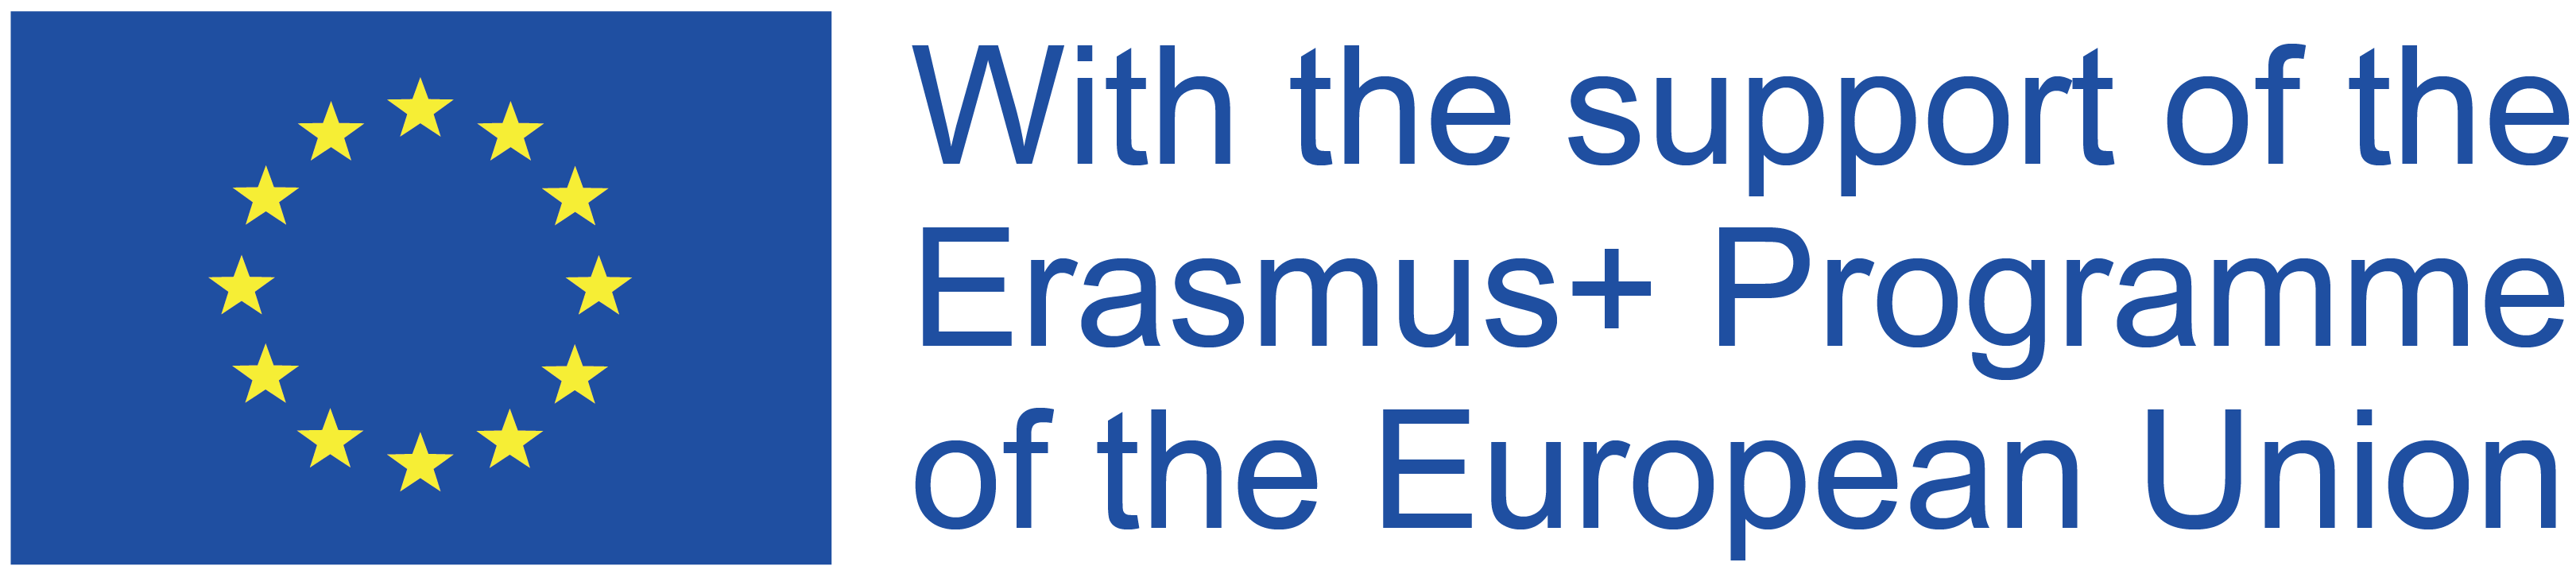 Logo Erasmus+ with the support